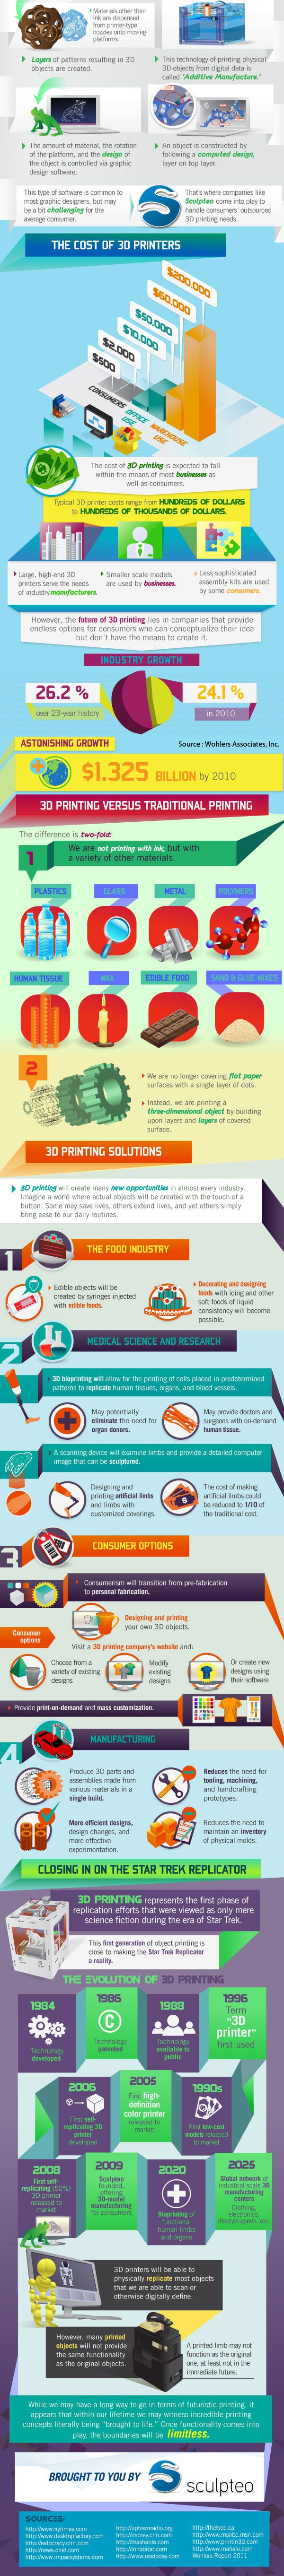 3D printing or additive manufacturing is a process of making three dimensional solid objects from a digital file.